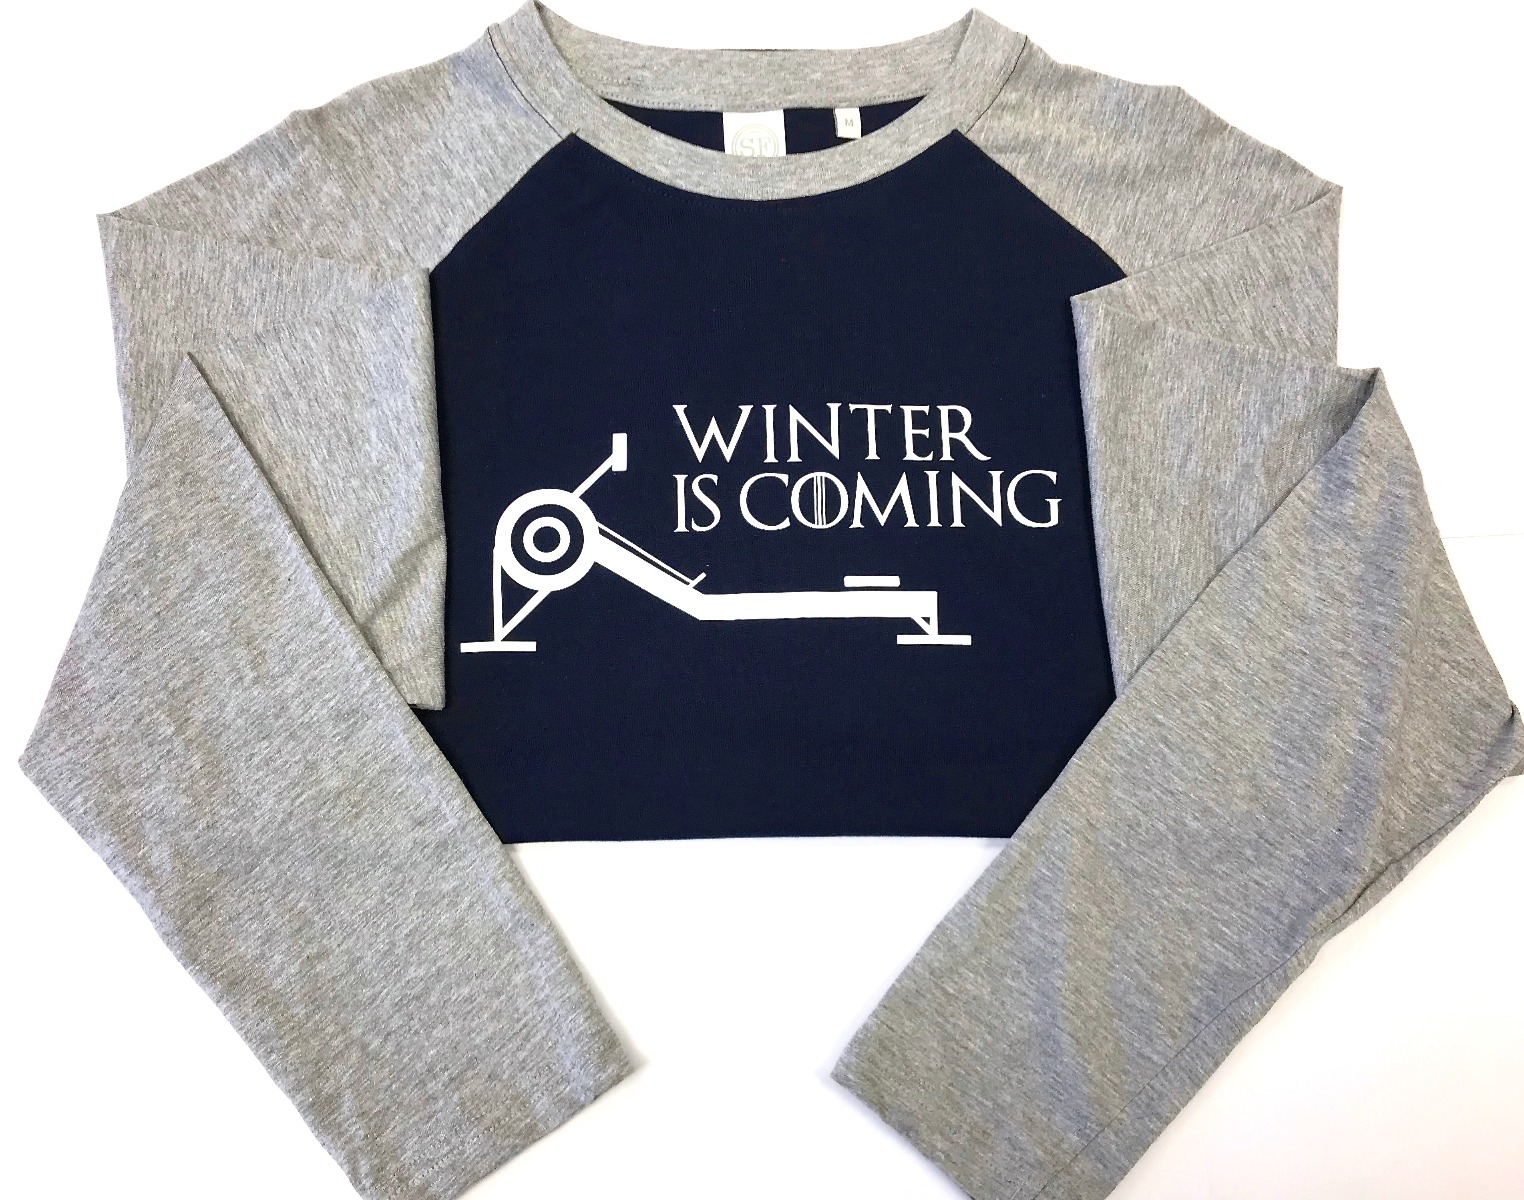 Winter is Coming Long-sleeve Baseball Top women